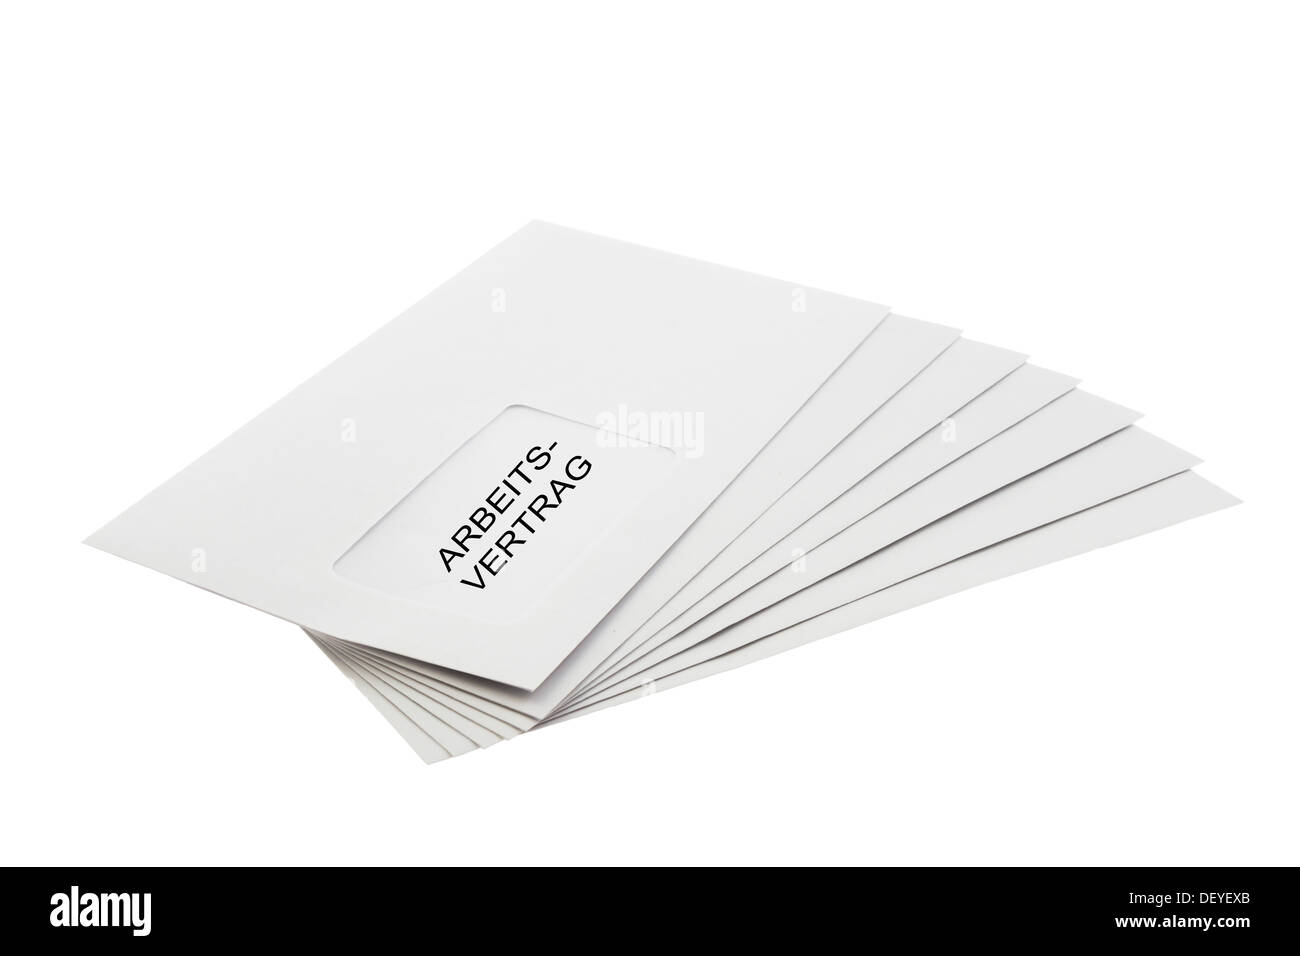 Arbeitsvertrag (German: contract of employment) Written on a batch of Envelopes isolated on White Background - Stock Image